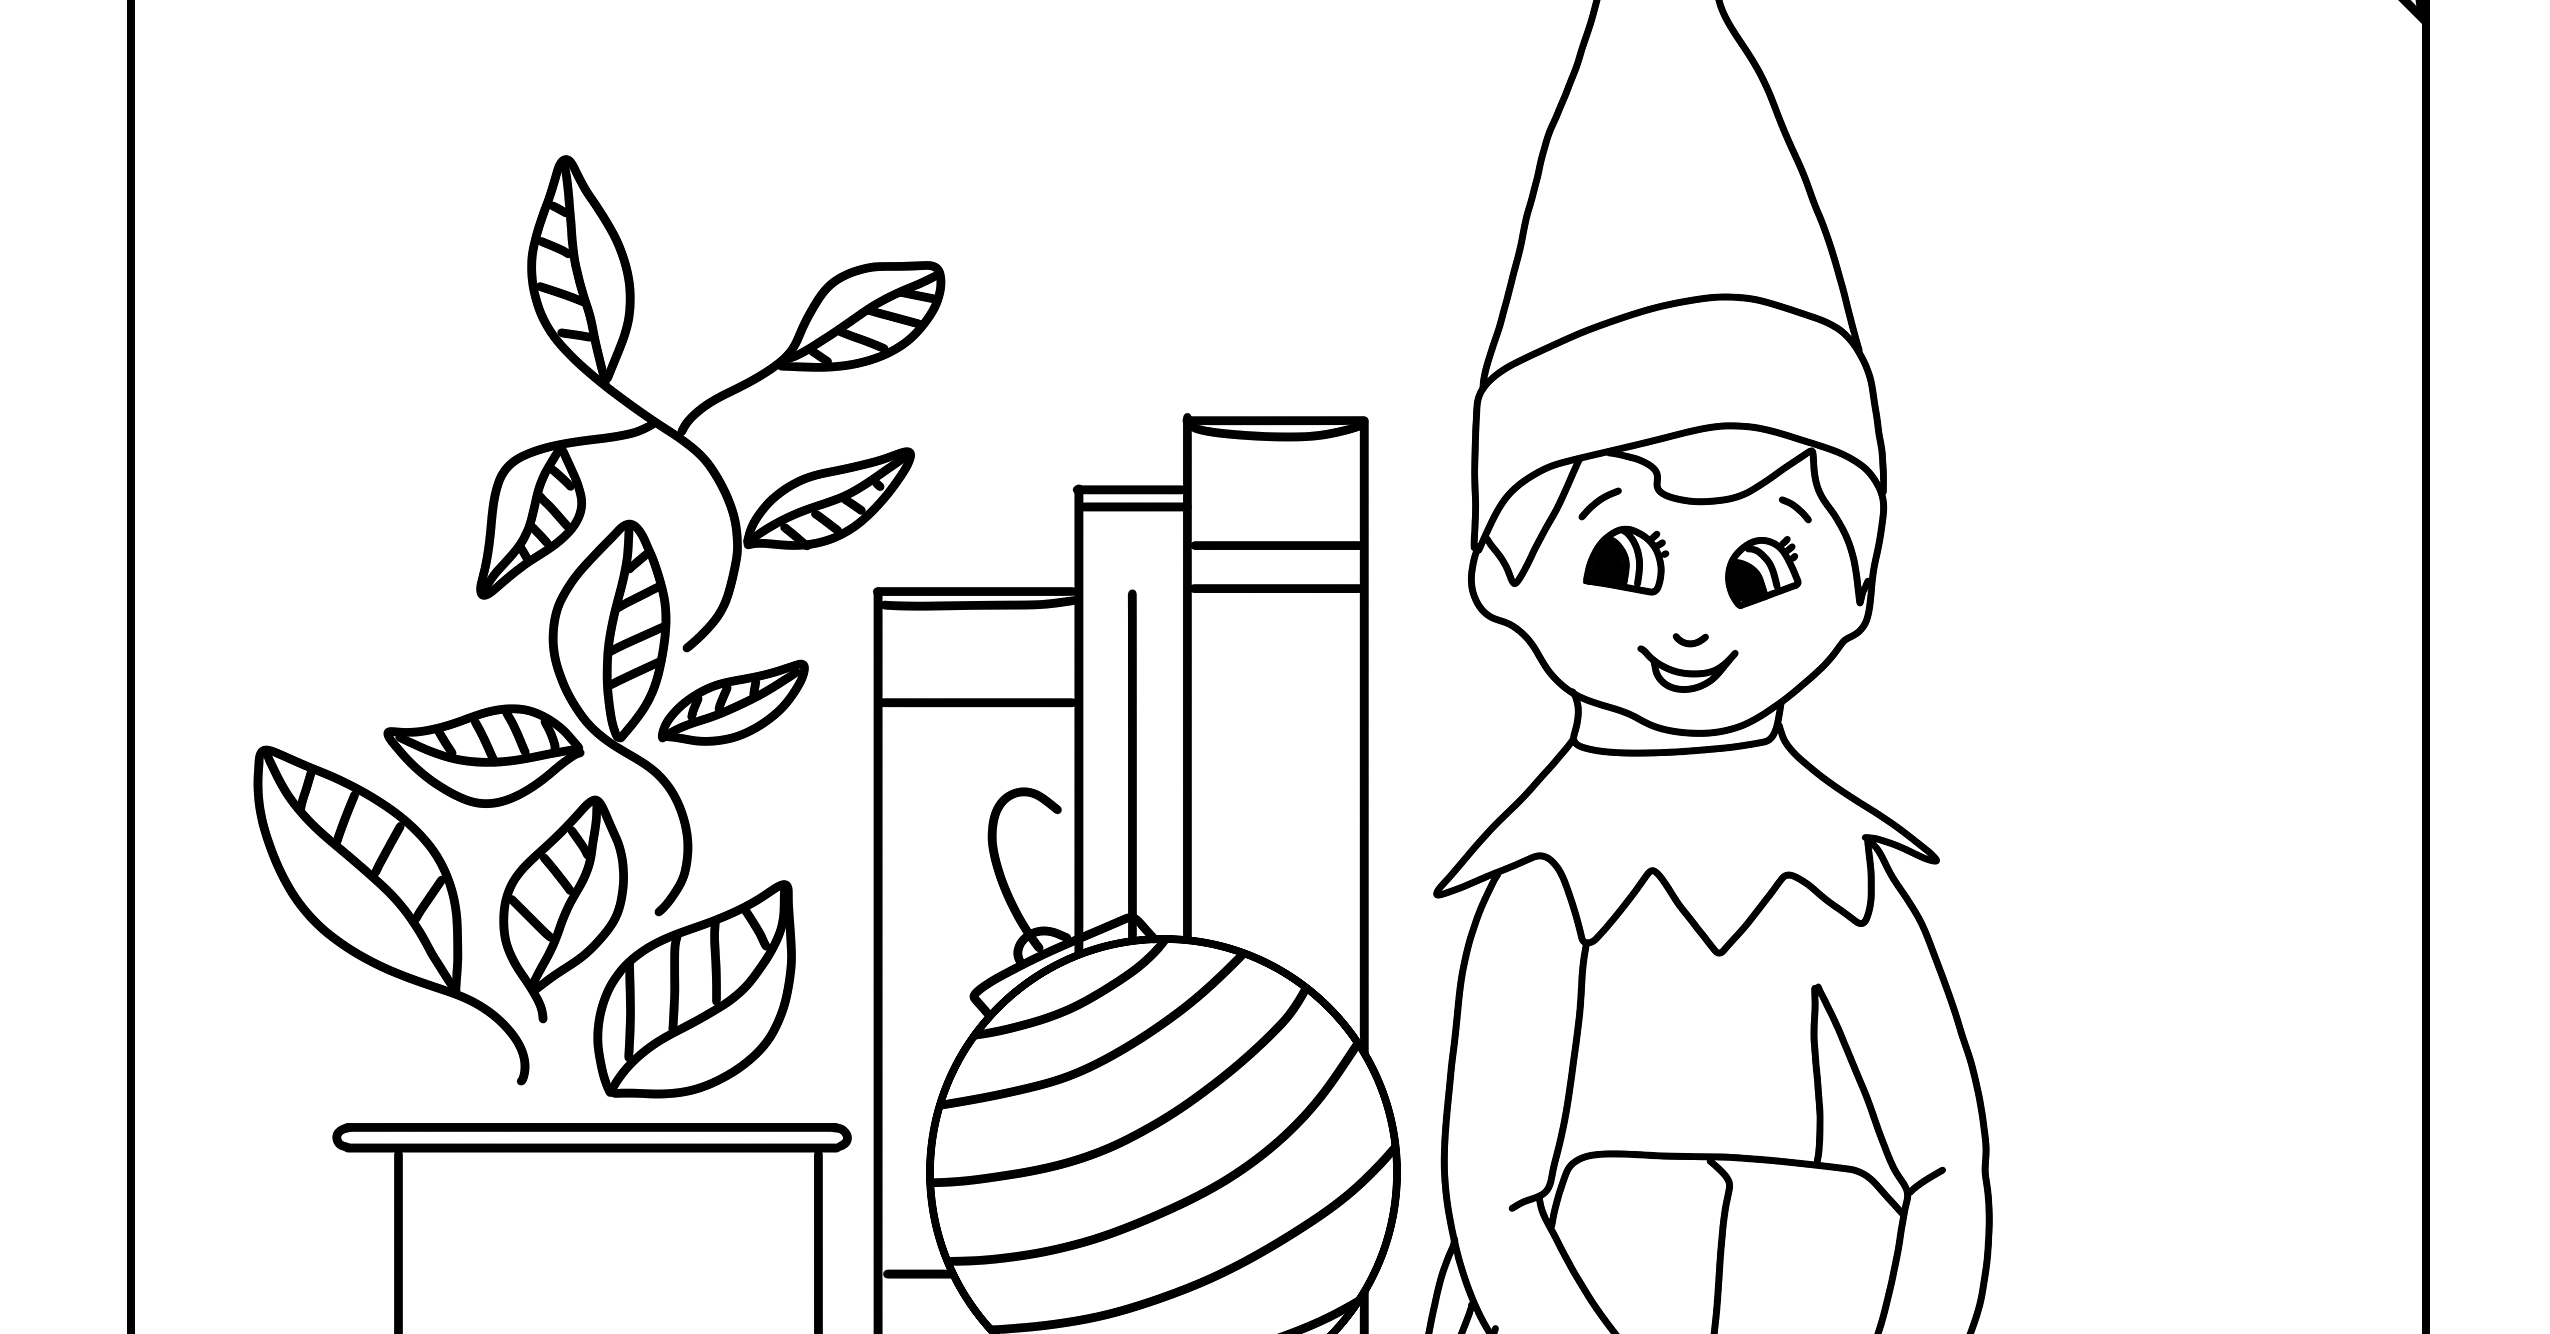 elf on the shelf pictures to color elf coloring pages learn to coloring elf the color pictures shelf to on